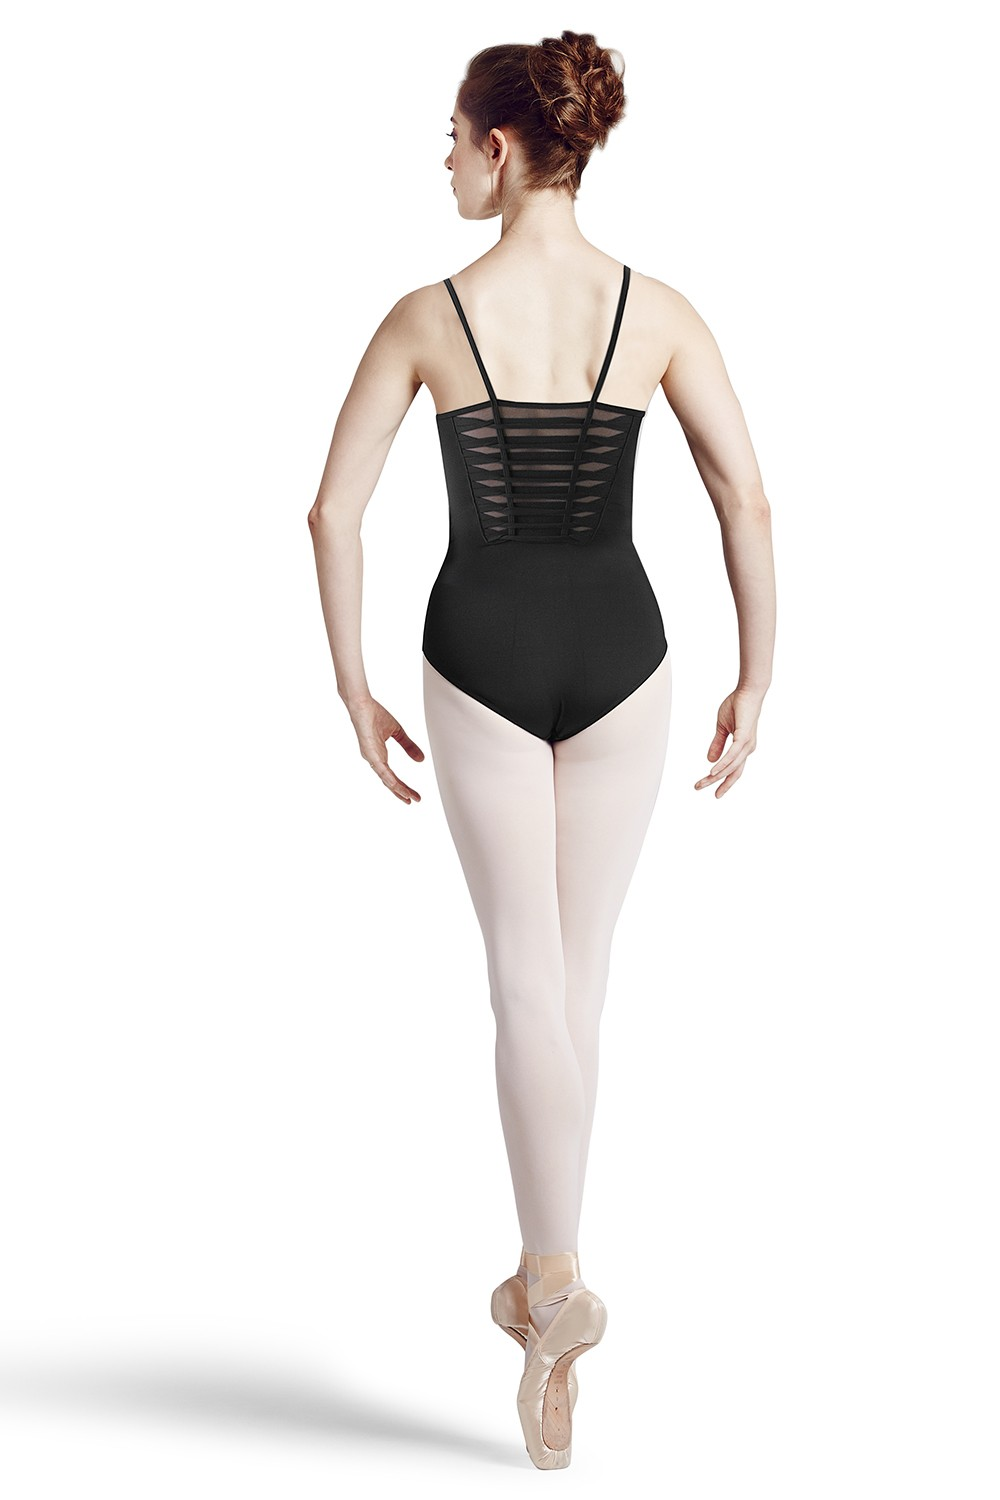 Khloe   Women's Dance Leotards